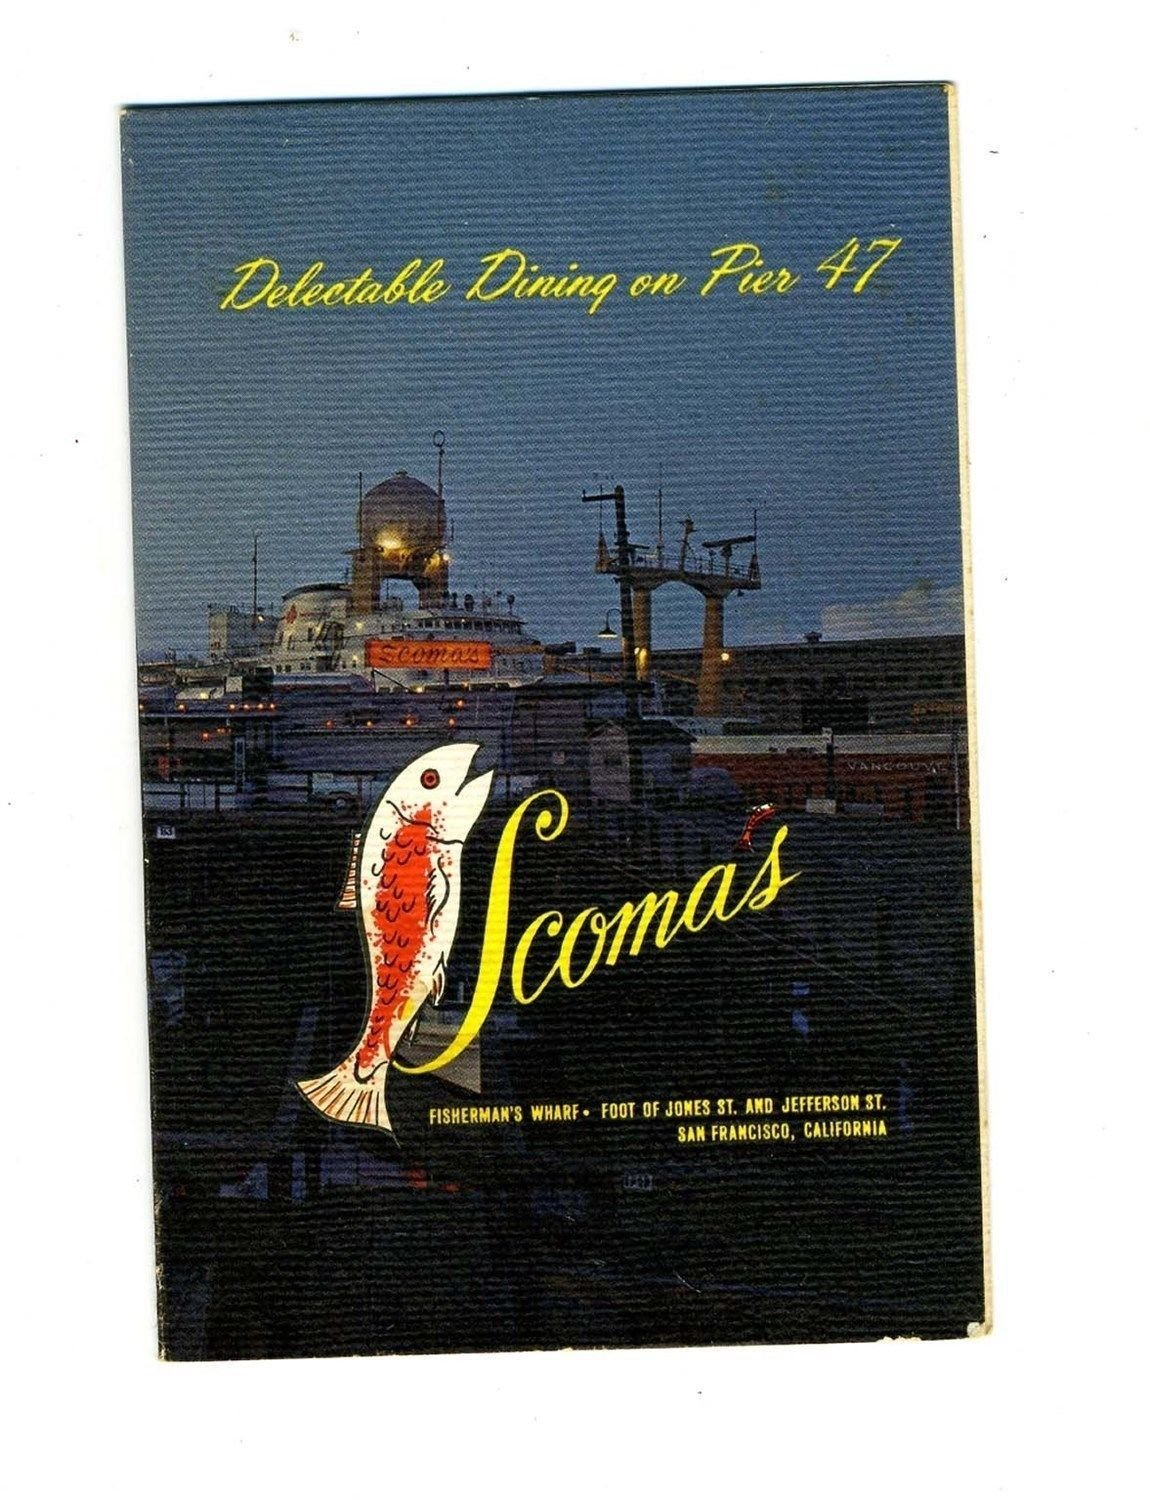 Scoma's Souvenir Menu Fisherman's Wharf San Francisco California 1970's